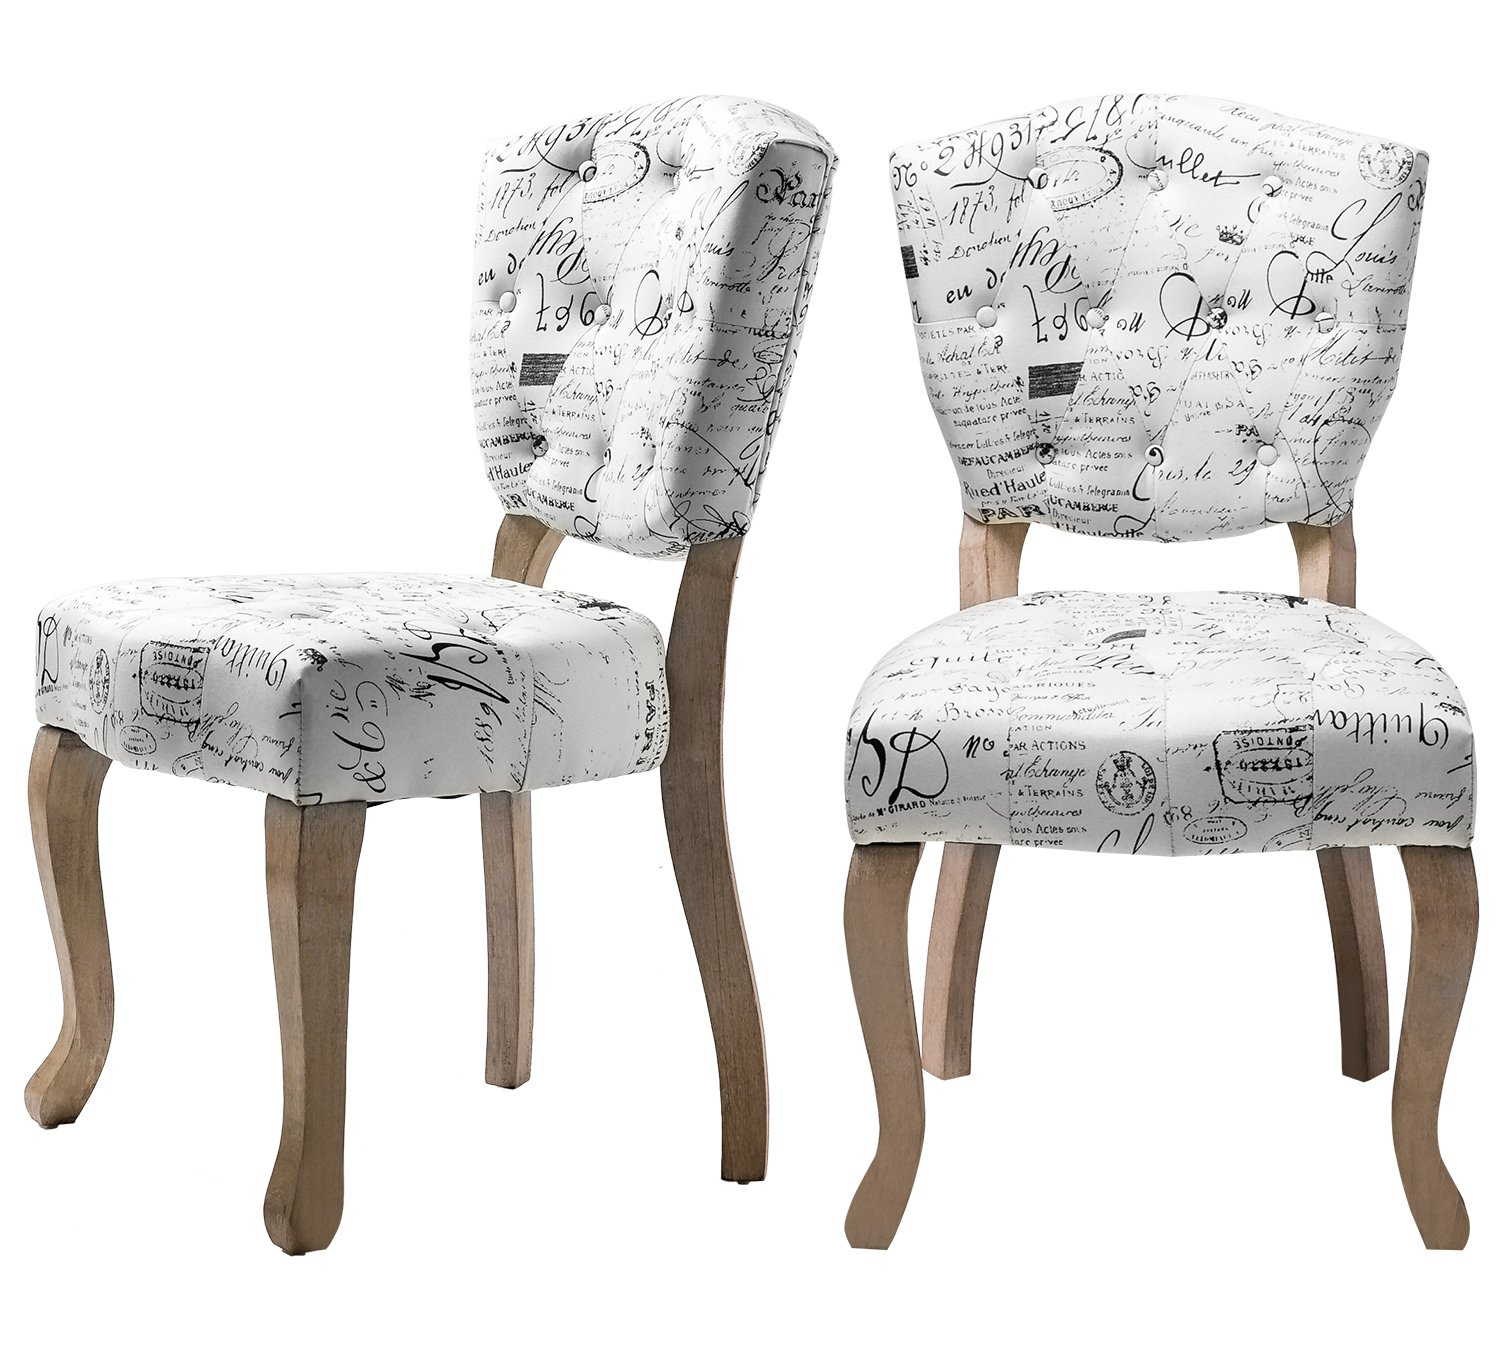 Harper Bright Designs Velvet Fabric Tufted Dining Chair Set of 2 Upholstered Accent Chair with Wood Legs Elegant Dining Room Furniture Beige 2